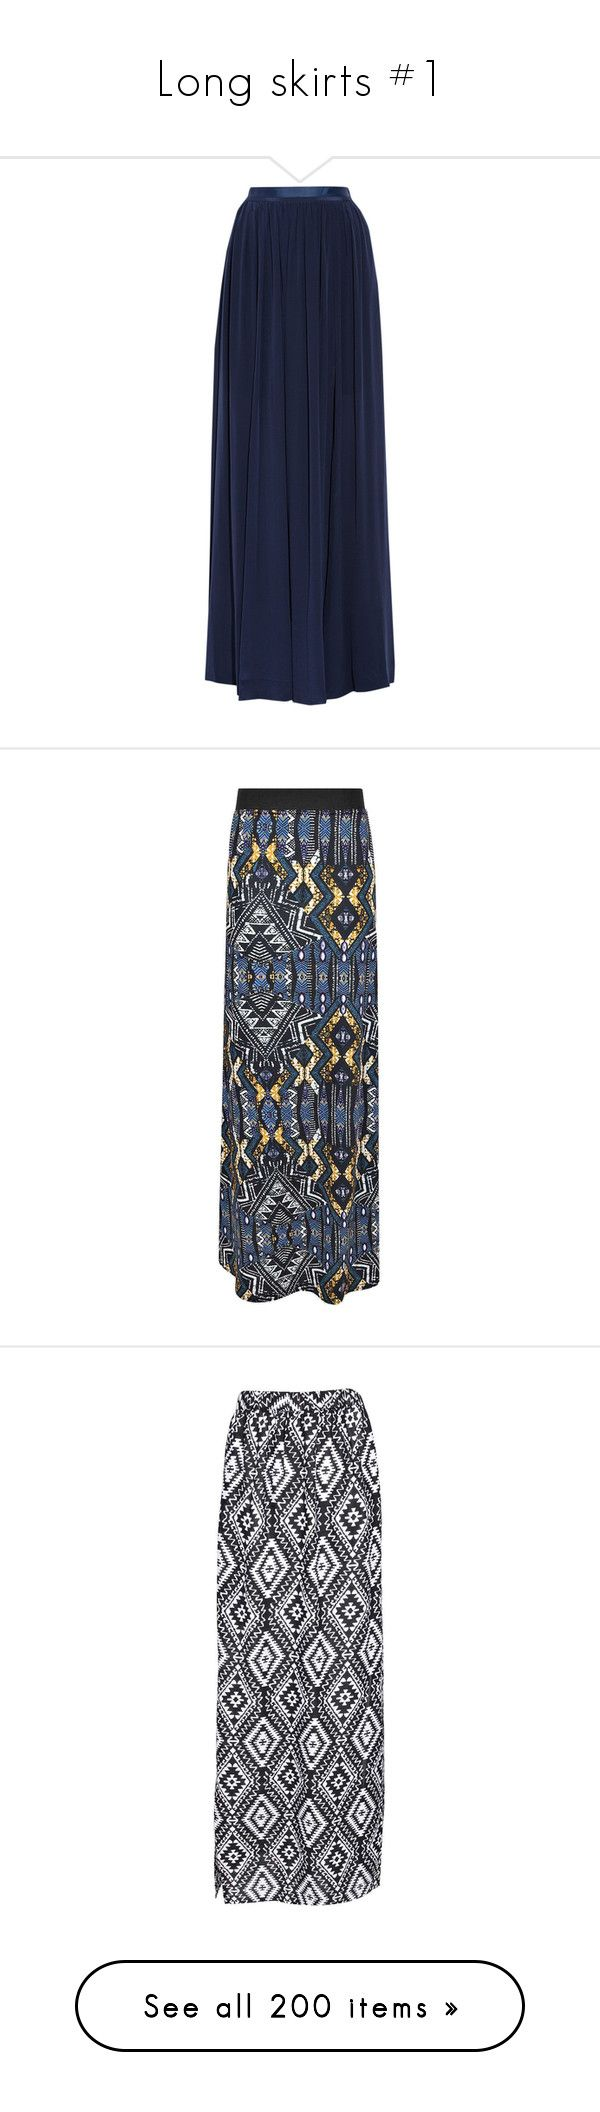 """Long skirts #1"" by loisanne ❤ liked on Polyvore featuring skirts, bottoms, elsa, hameet, storm blue, pleated maxi skirt, blue pleated maxi skirt, silk skirt, long pleated skirt and long maxi skirts"